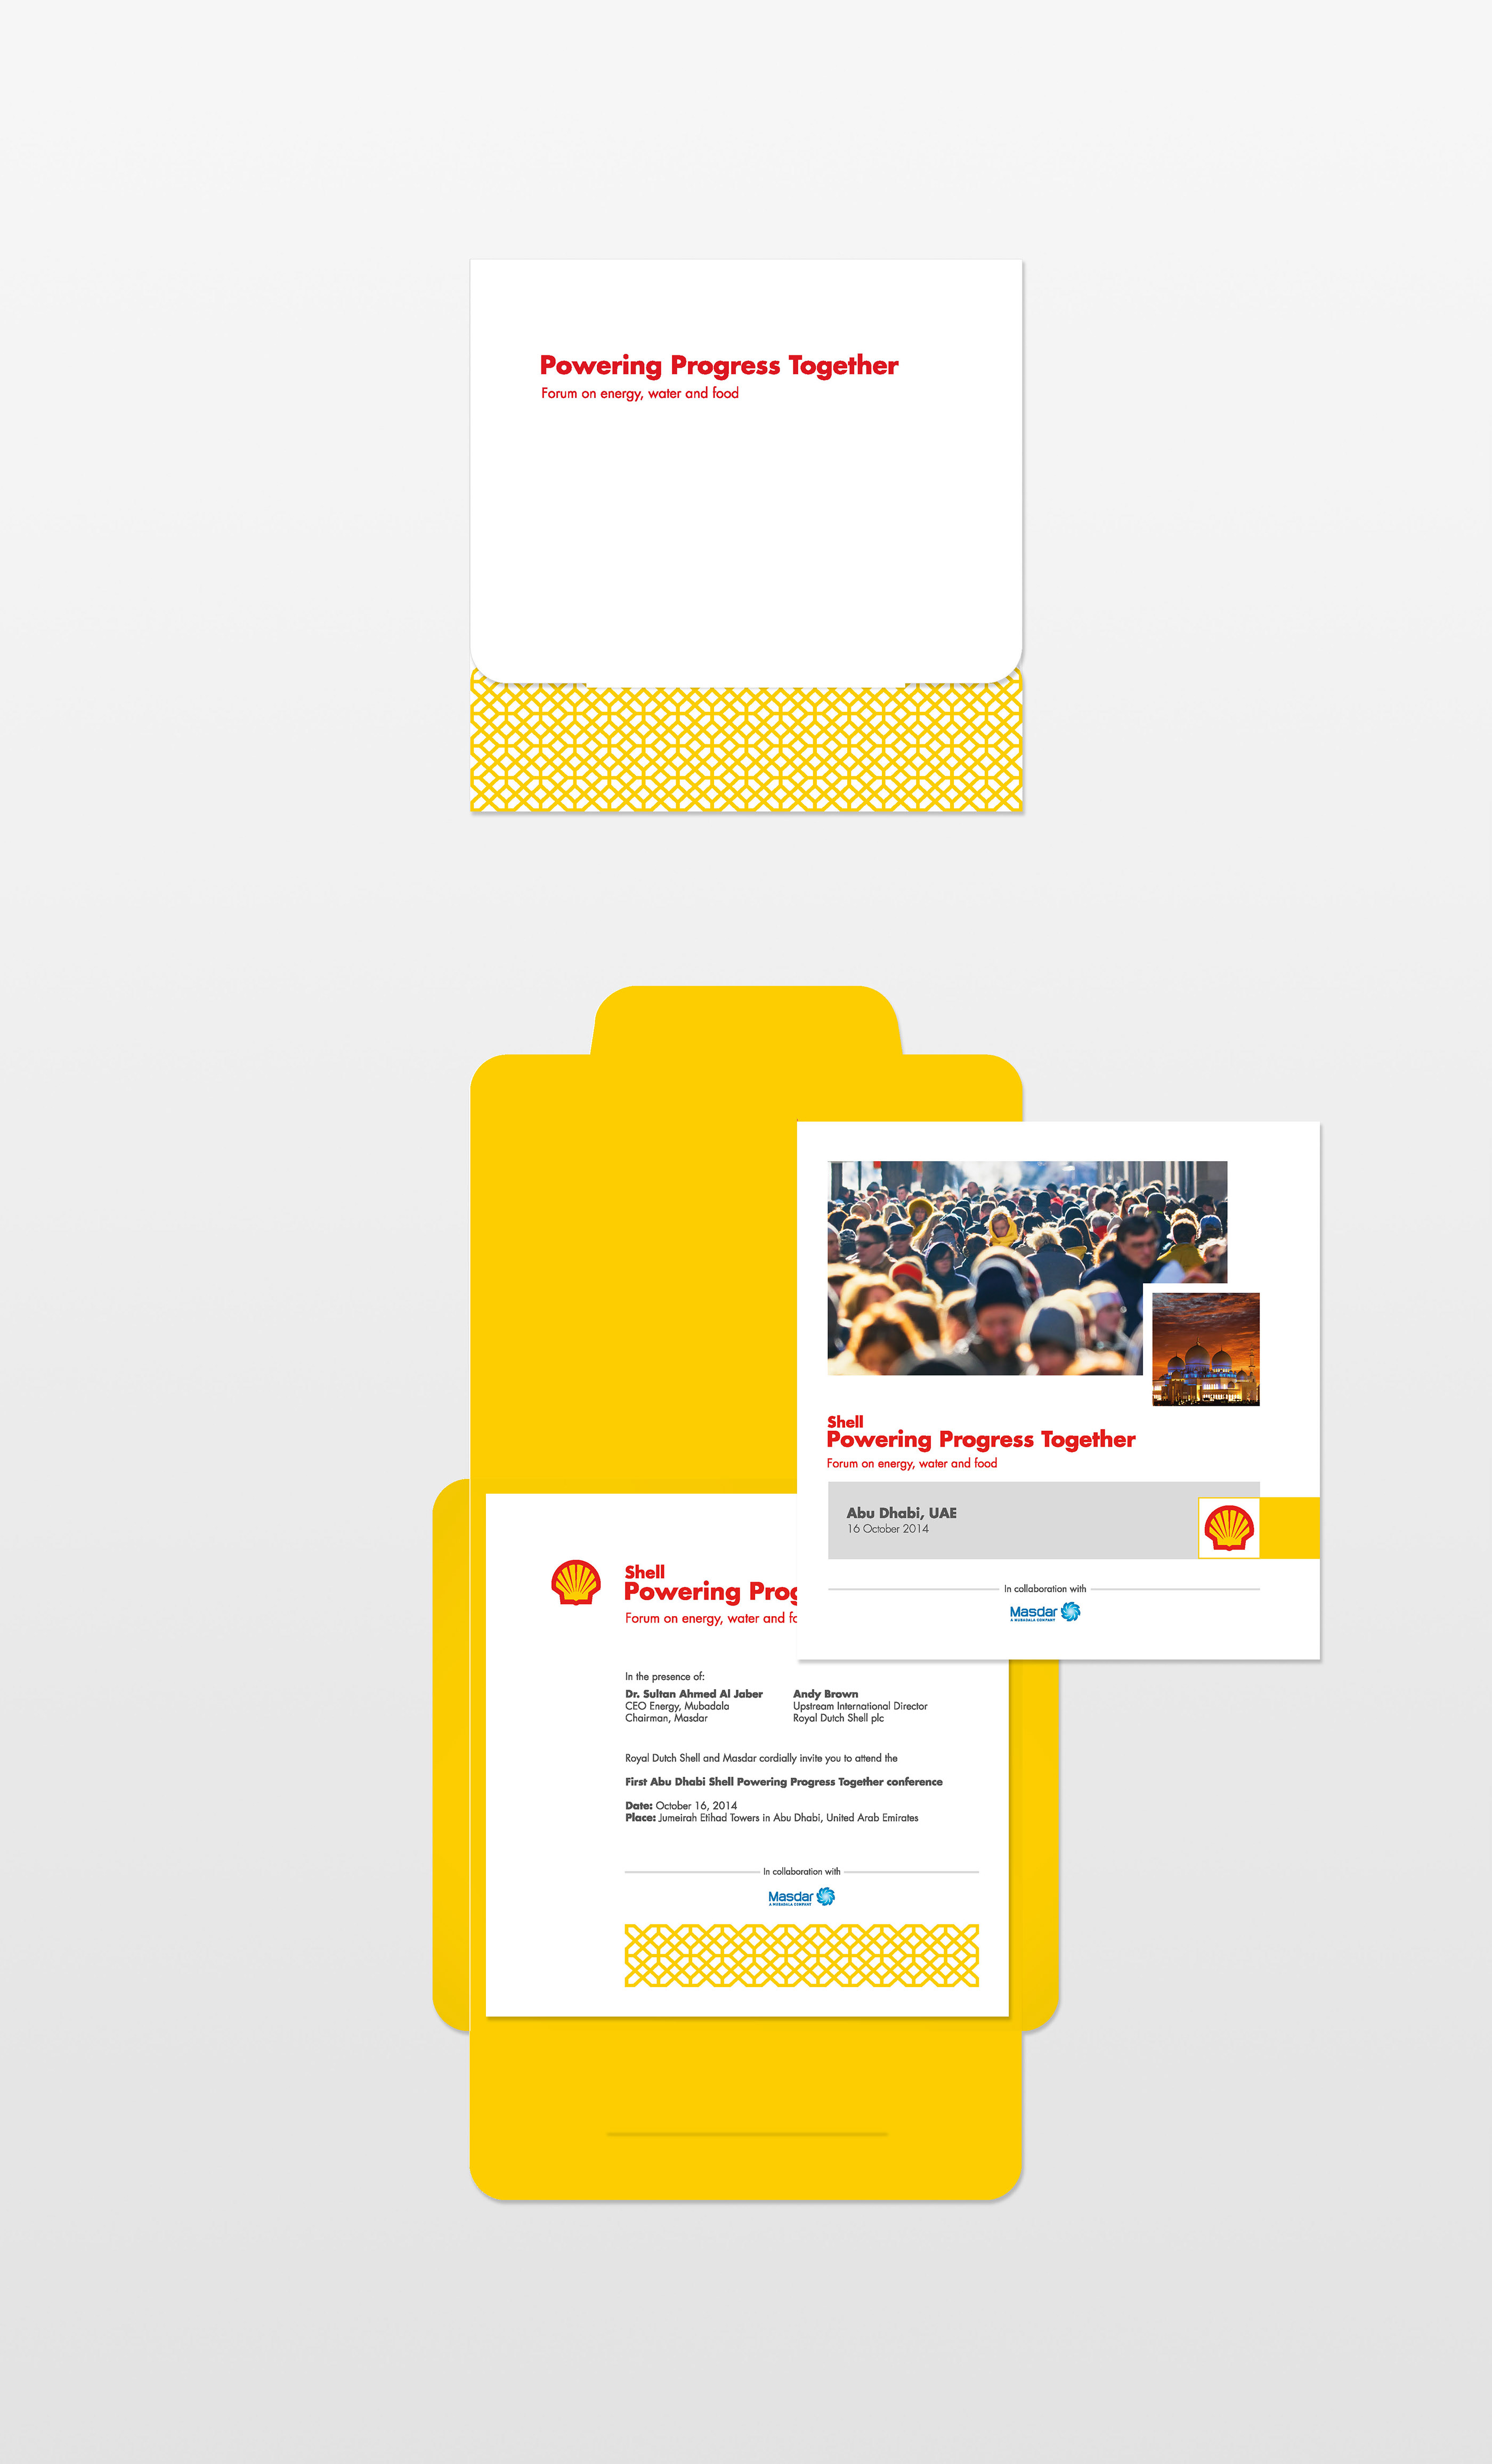 Shell Powering Progress Together - 2014 on Behance